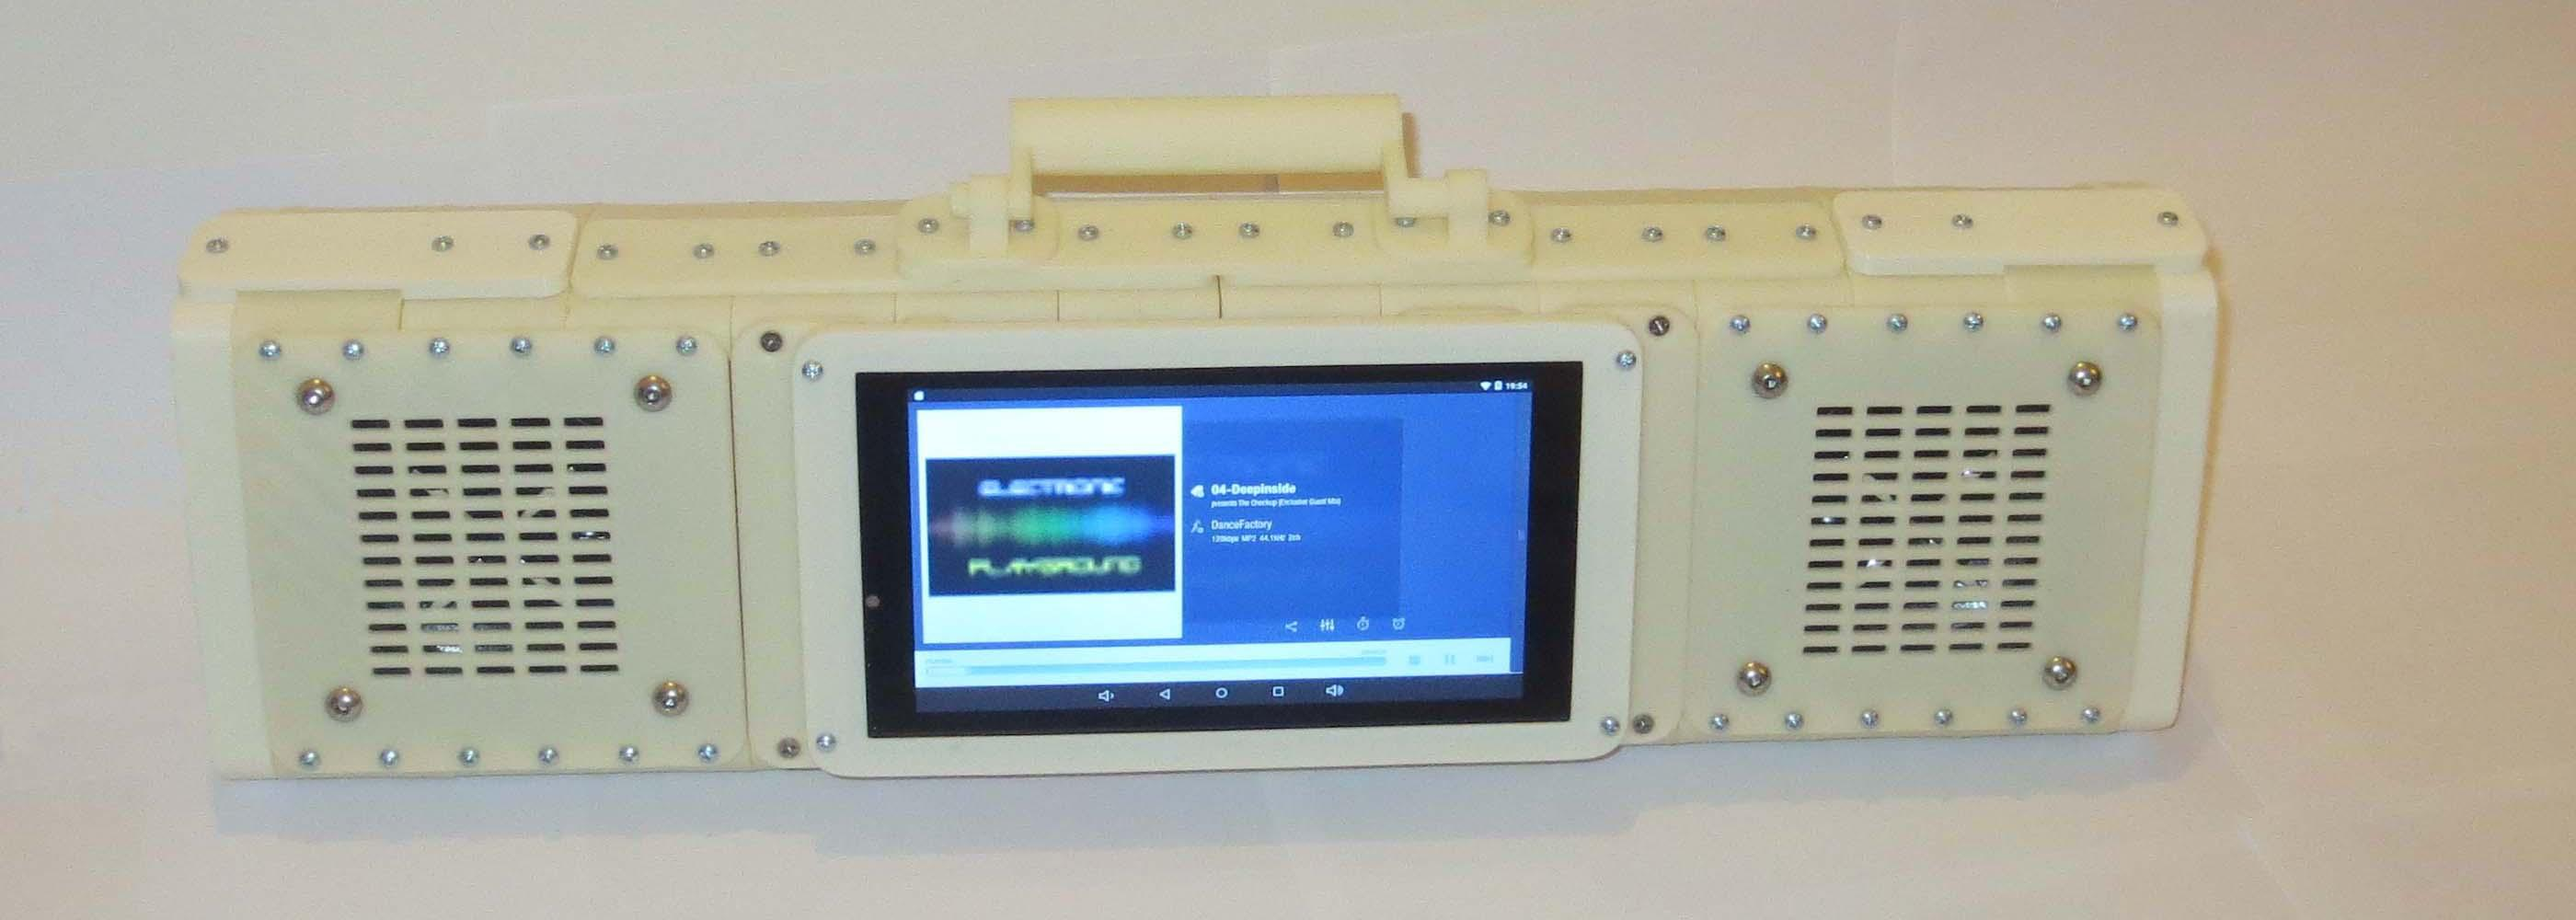 Android based sound system